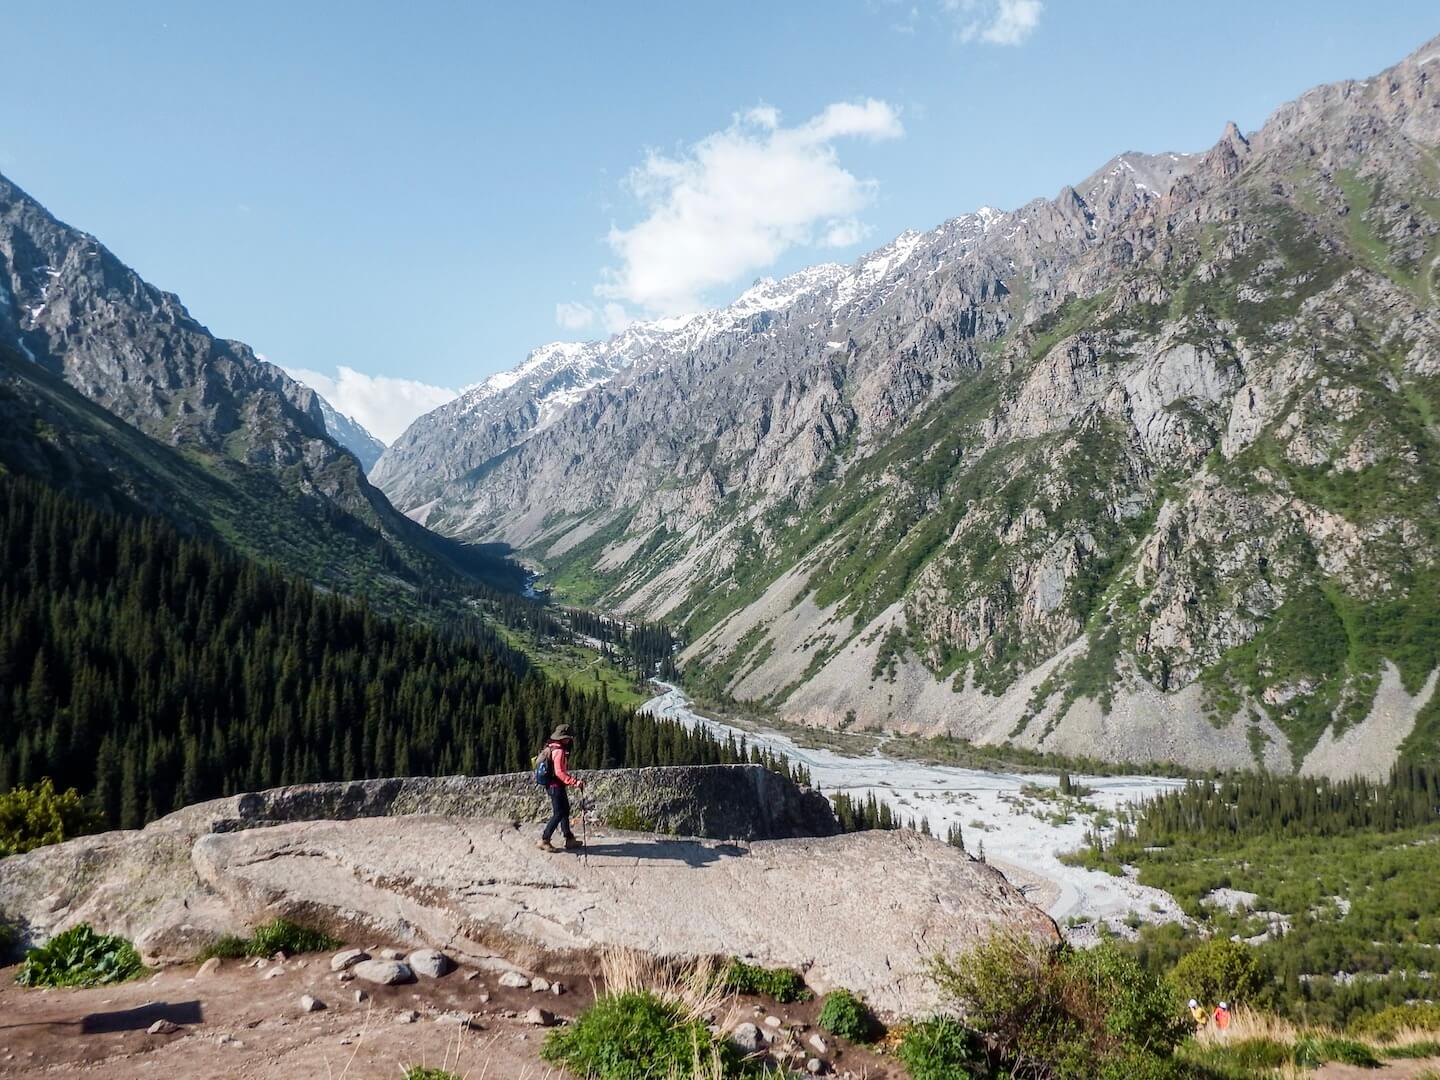 Best Bishkek Day Trip: Hike to Ak-Sai Glacier in Ala Archa ...